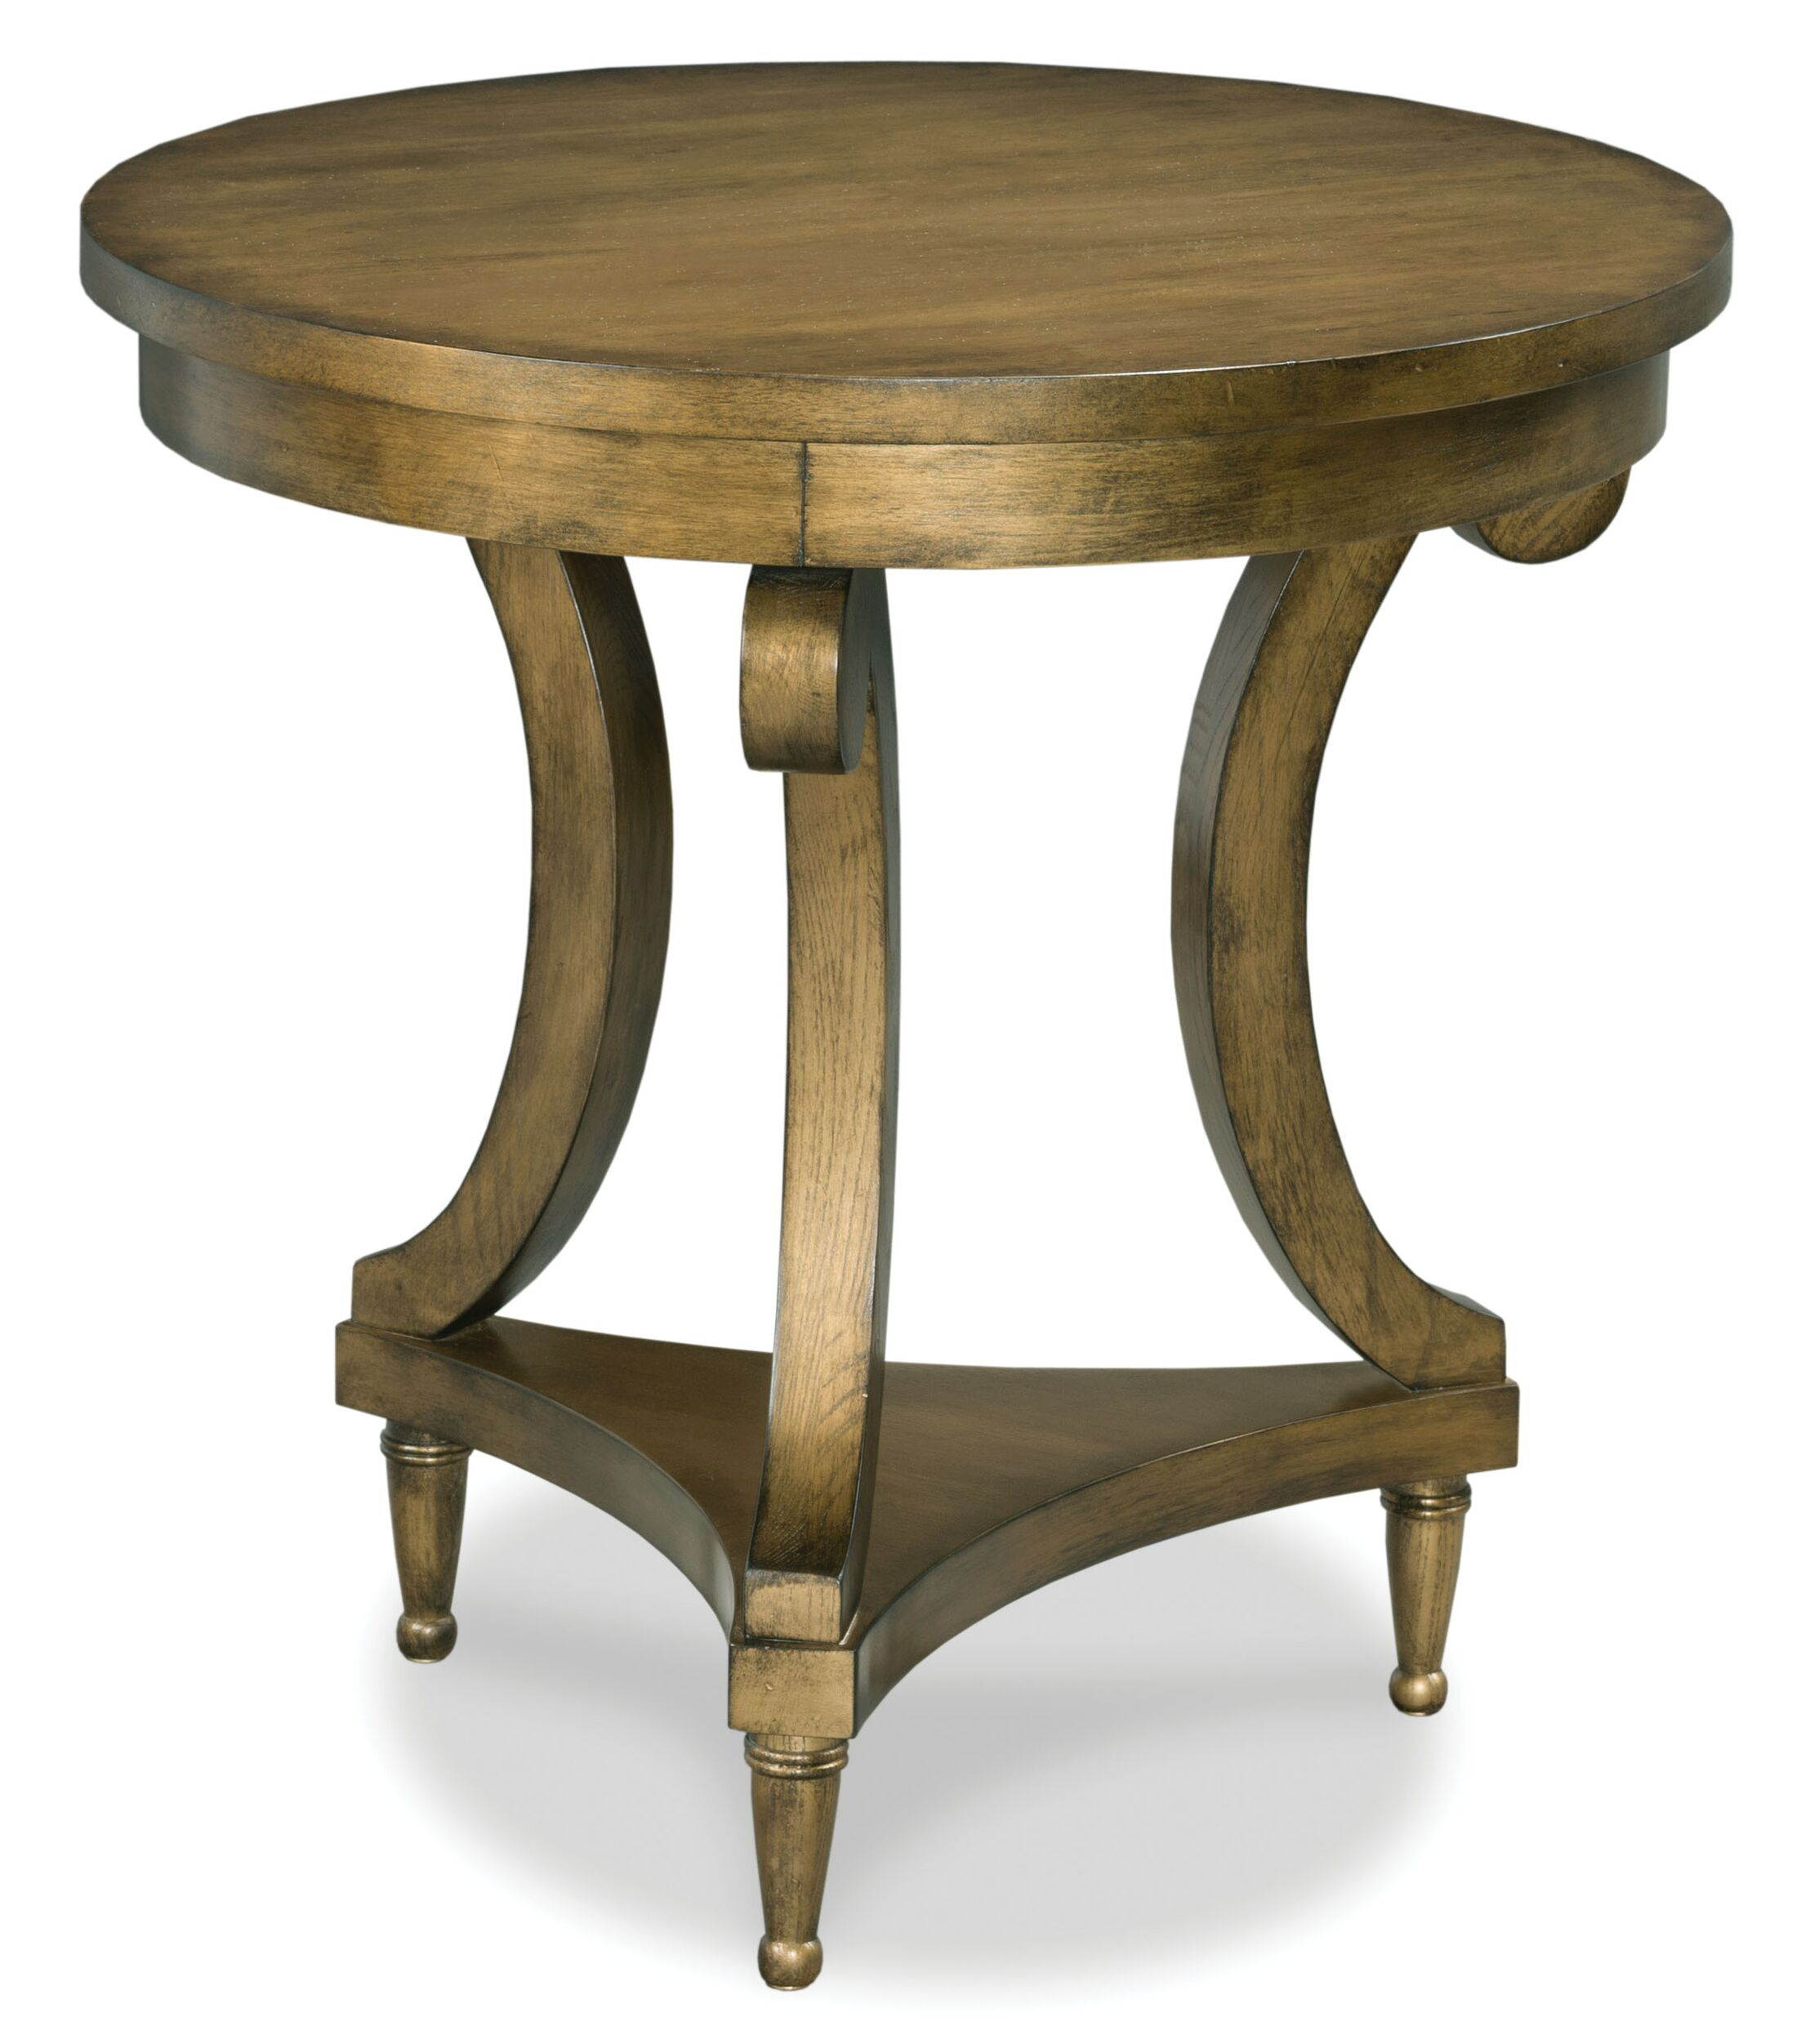 End Table Color: Aged Brass